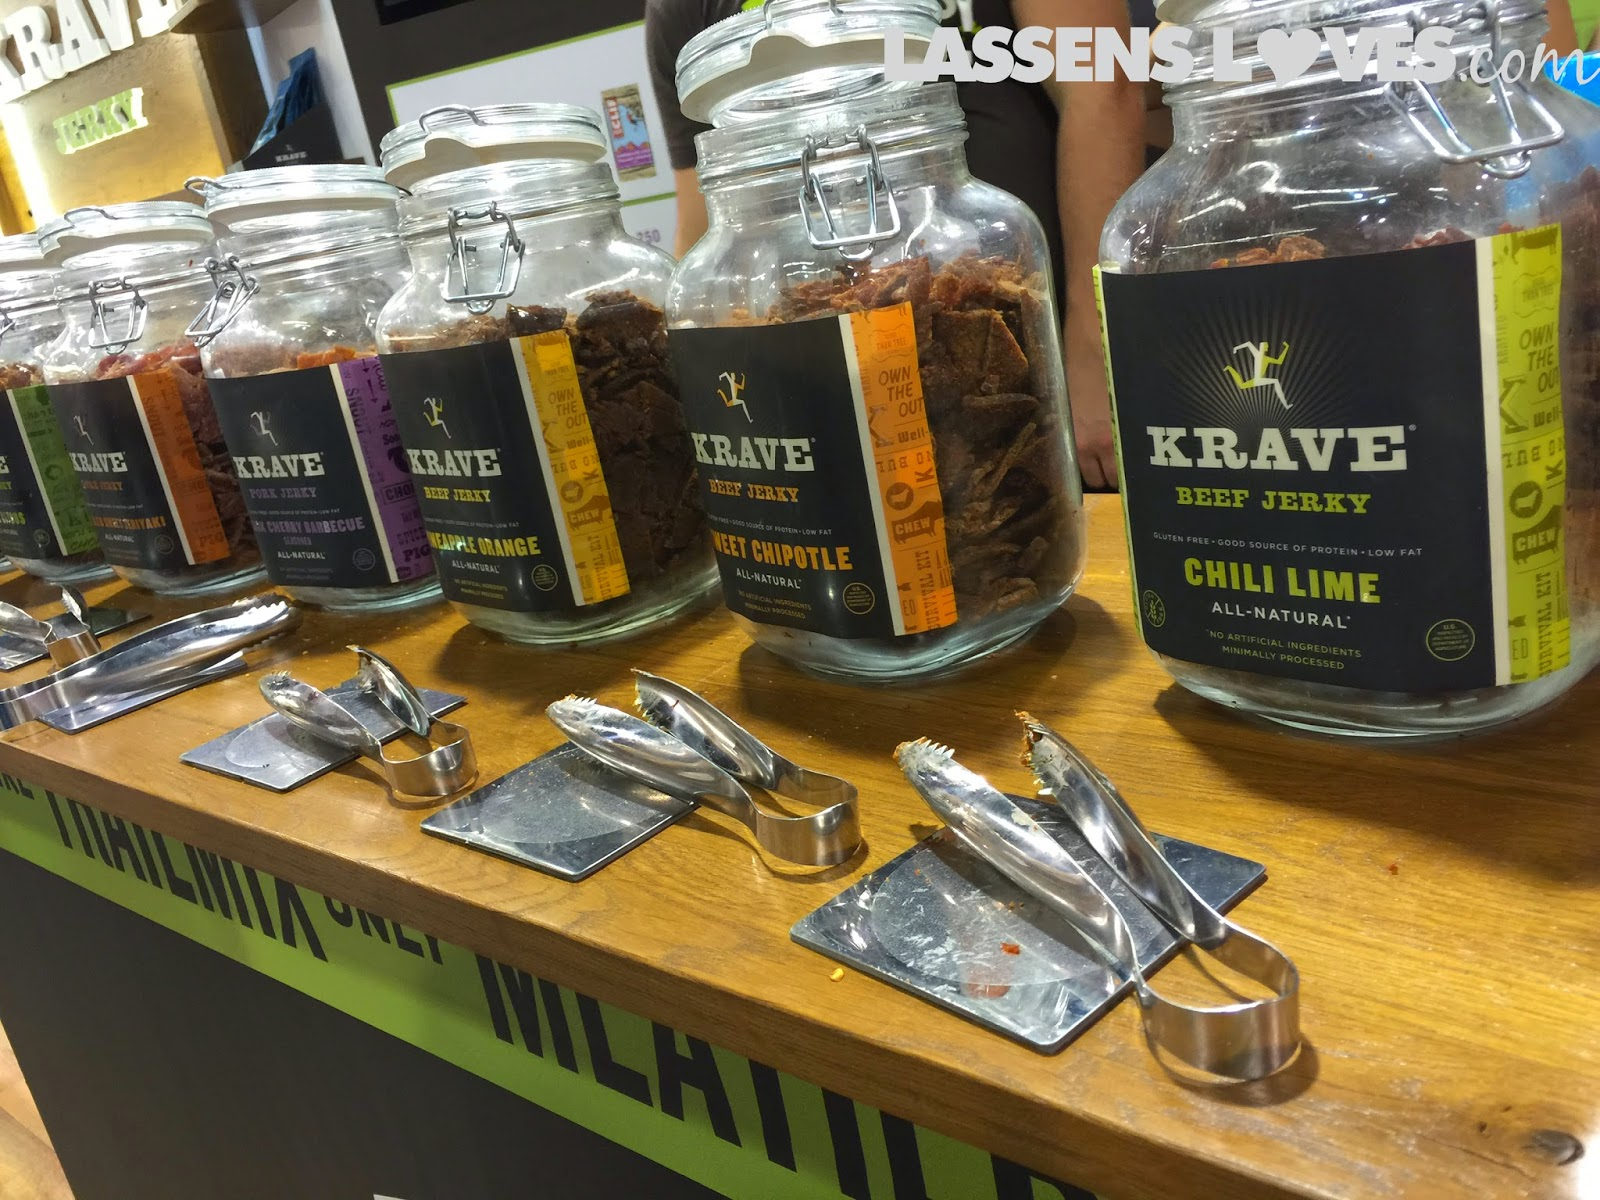 Expo+West+2015, Natural+Foods+Show, New+Natural+Products, krave+jerky